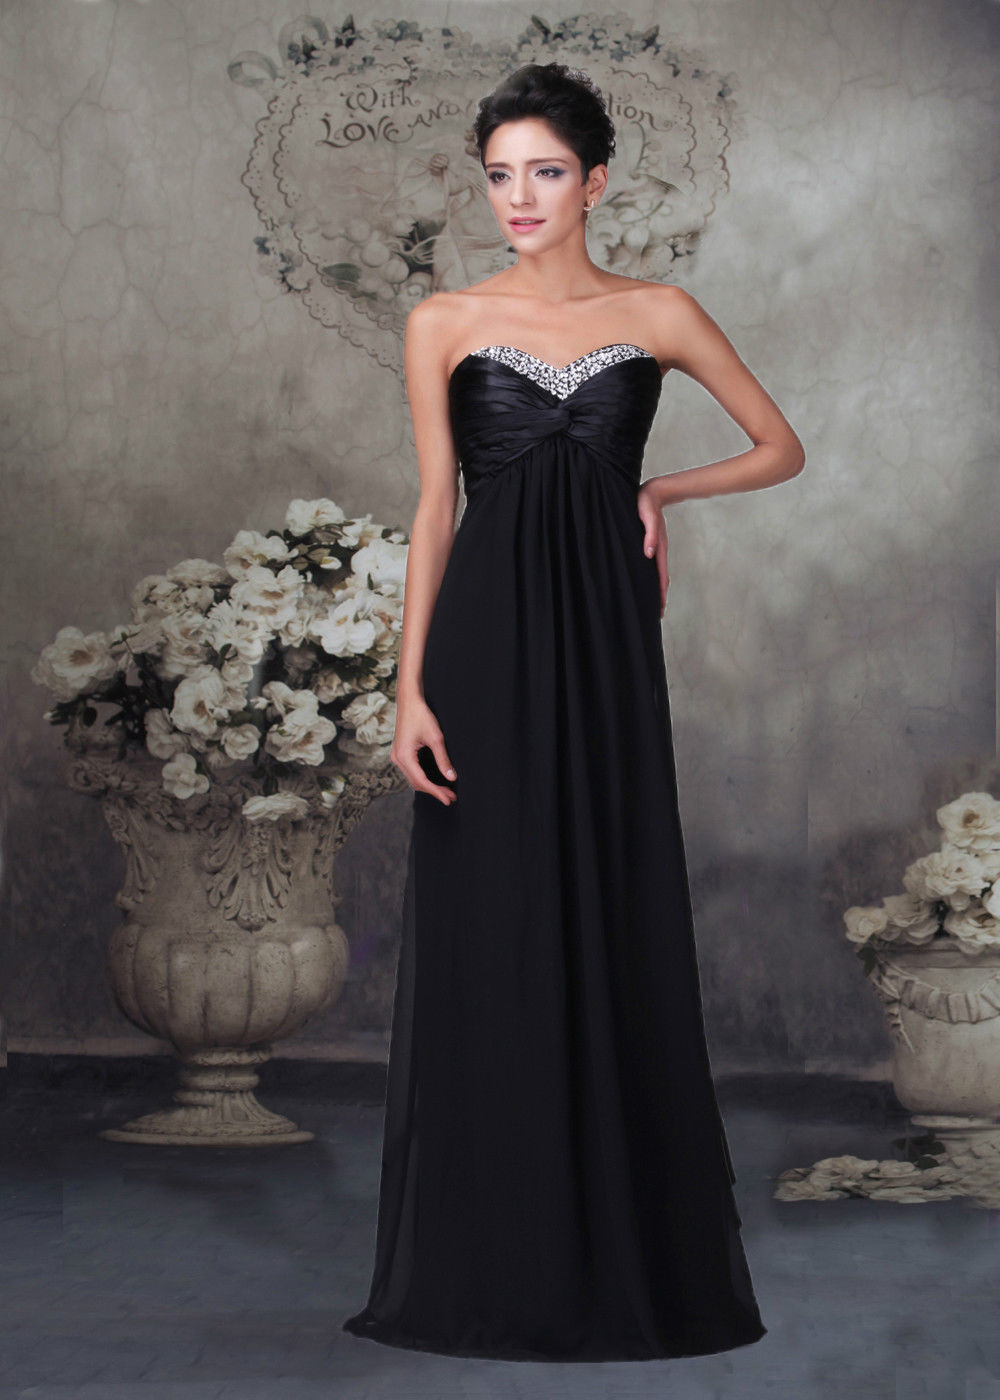 Bridesmaid Dresses Under 50 Dollars _Other dresses_dressesss